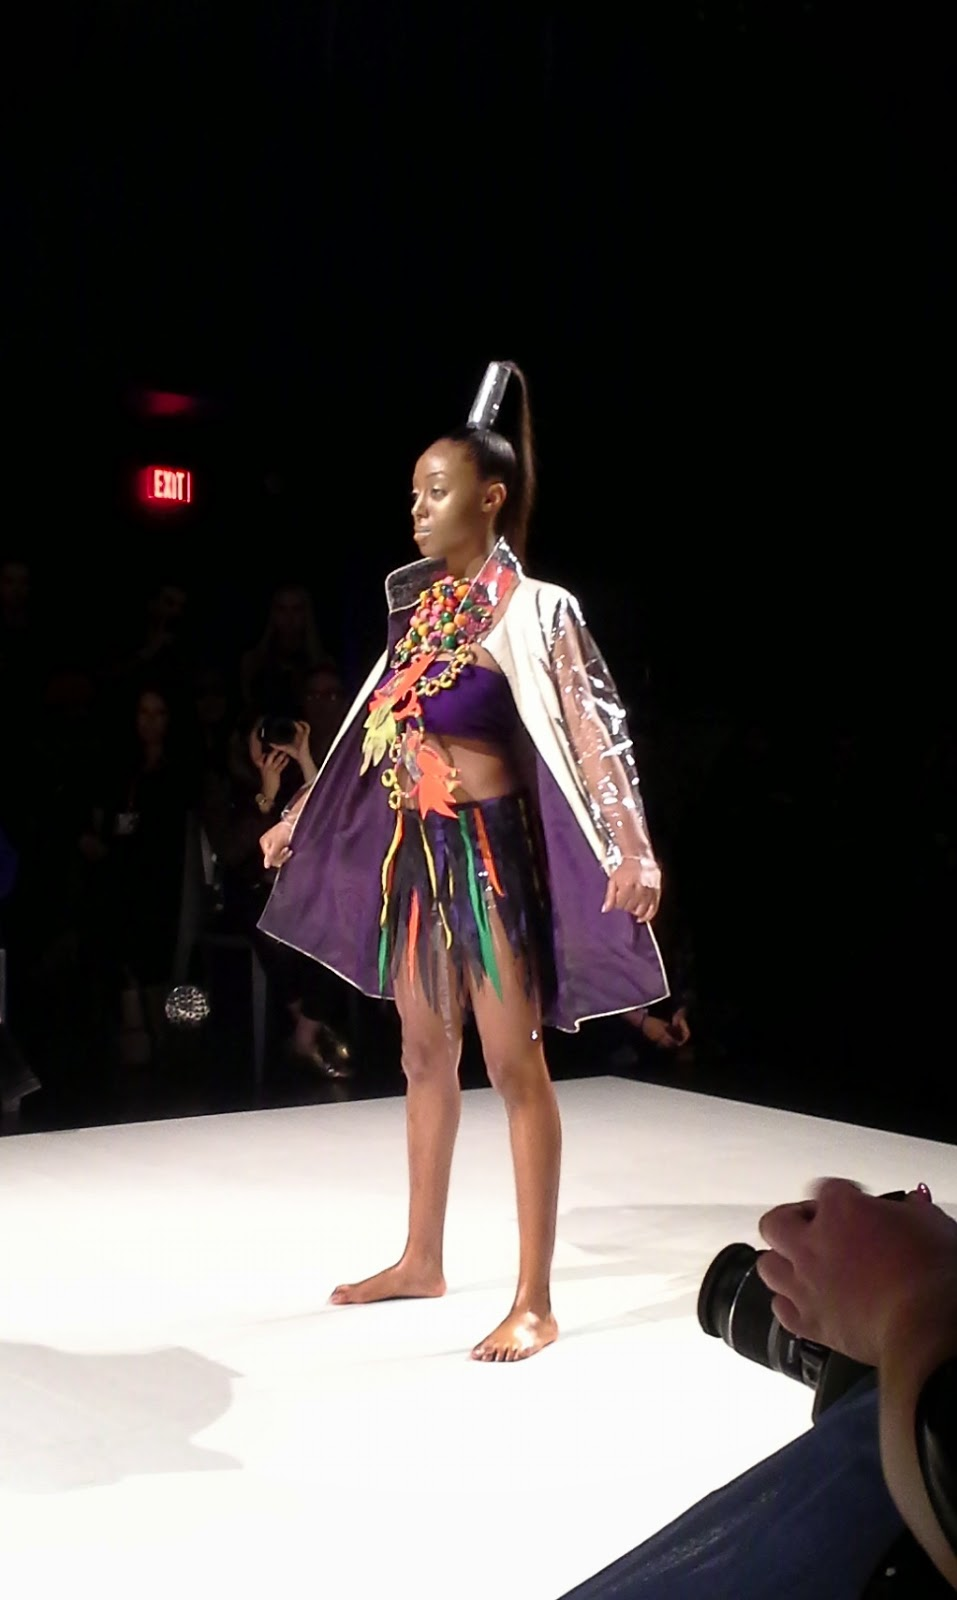 HASTI Collection Fashion Art Toronto [FAT] Fashion Week 2014 Style Show Melanie.Ps Canadian Designers The Purple Scarf Runway Art